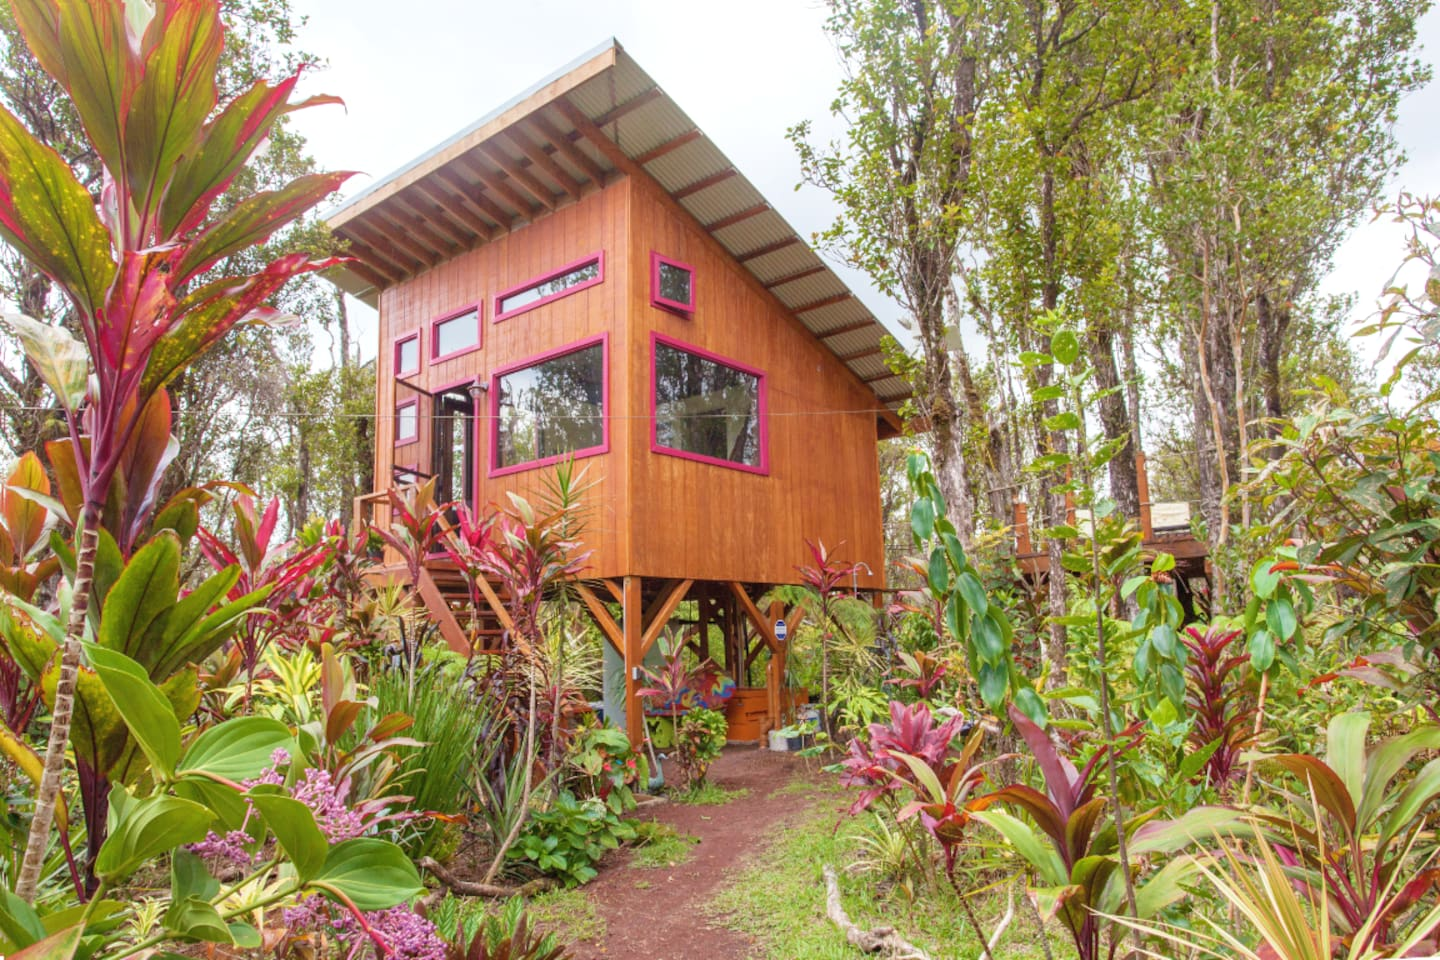 Nestled in the Ohia jungle, this getaway is perfect for couples looking for a retreat into nature